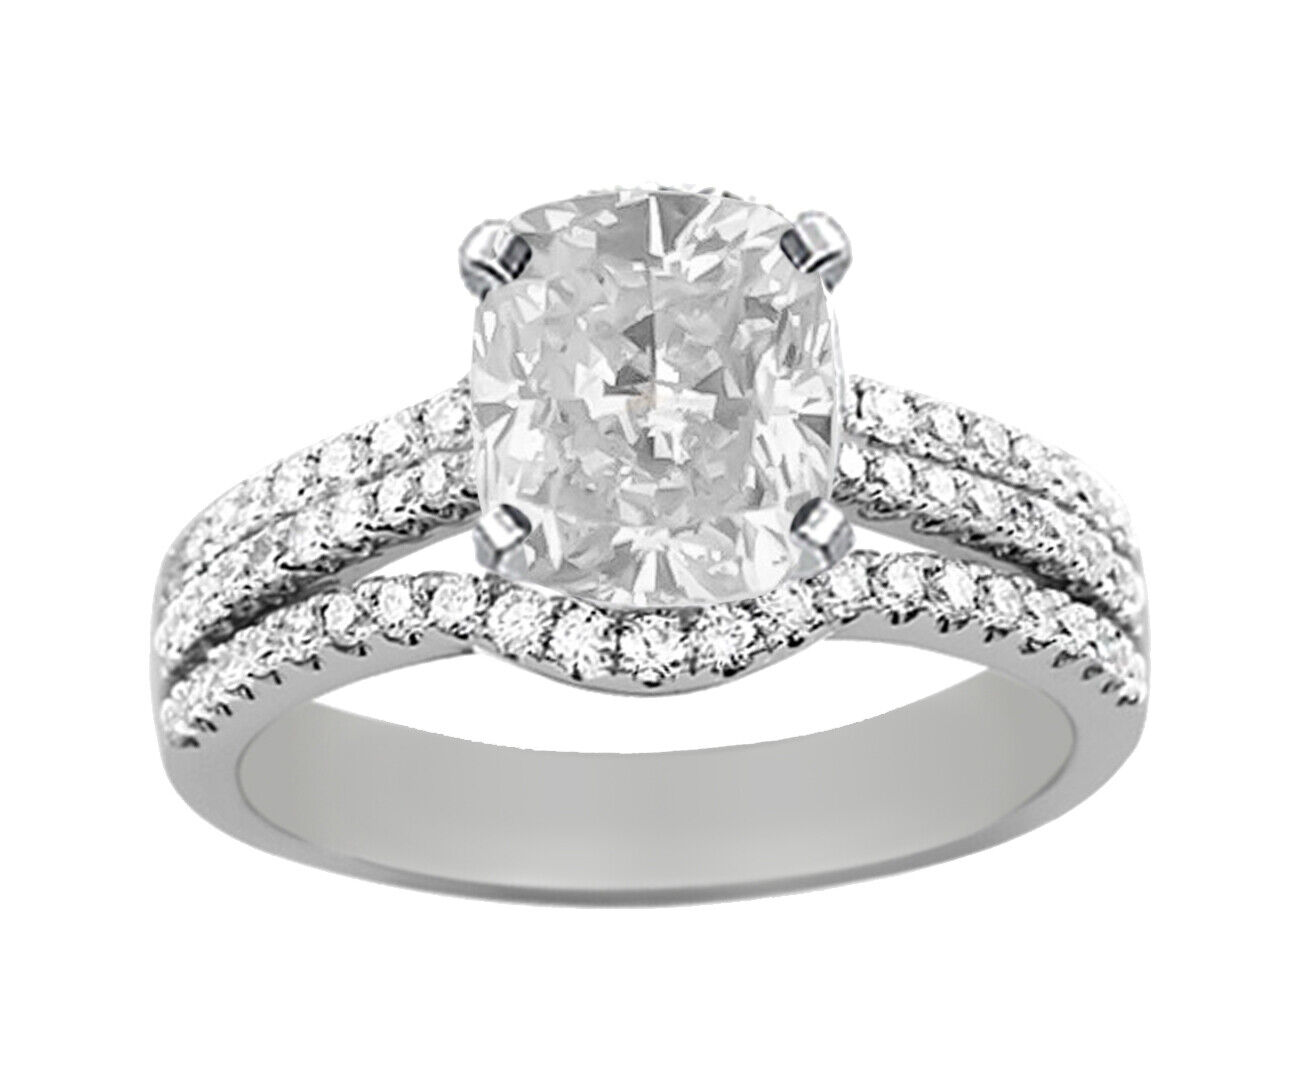 GIA Certified Diamond Engagement Ring 14k White Gold 1.94 CTW Natural Cushion